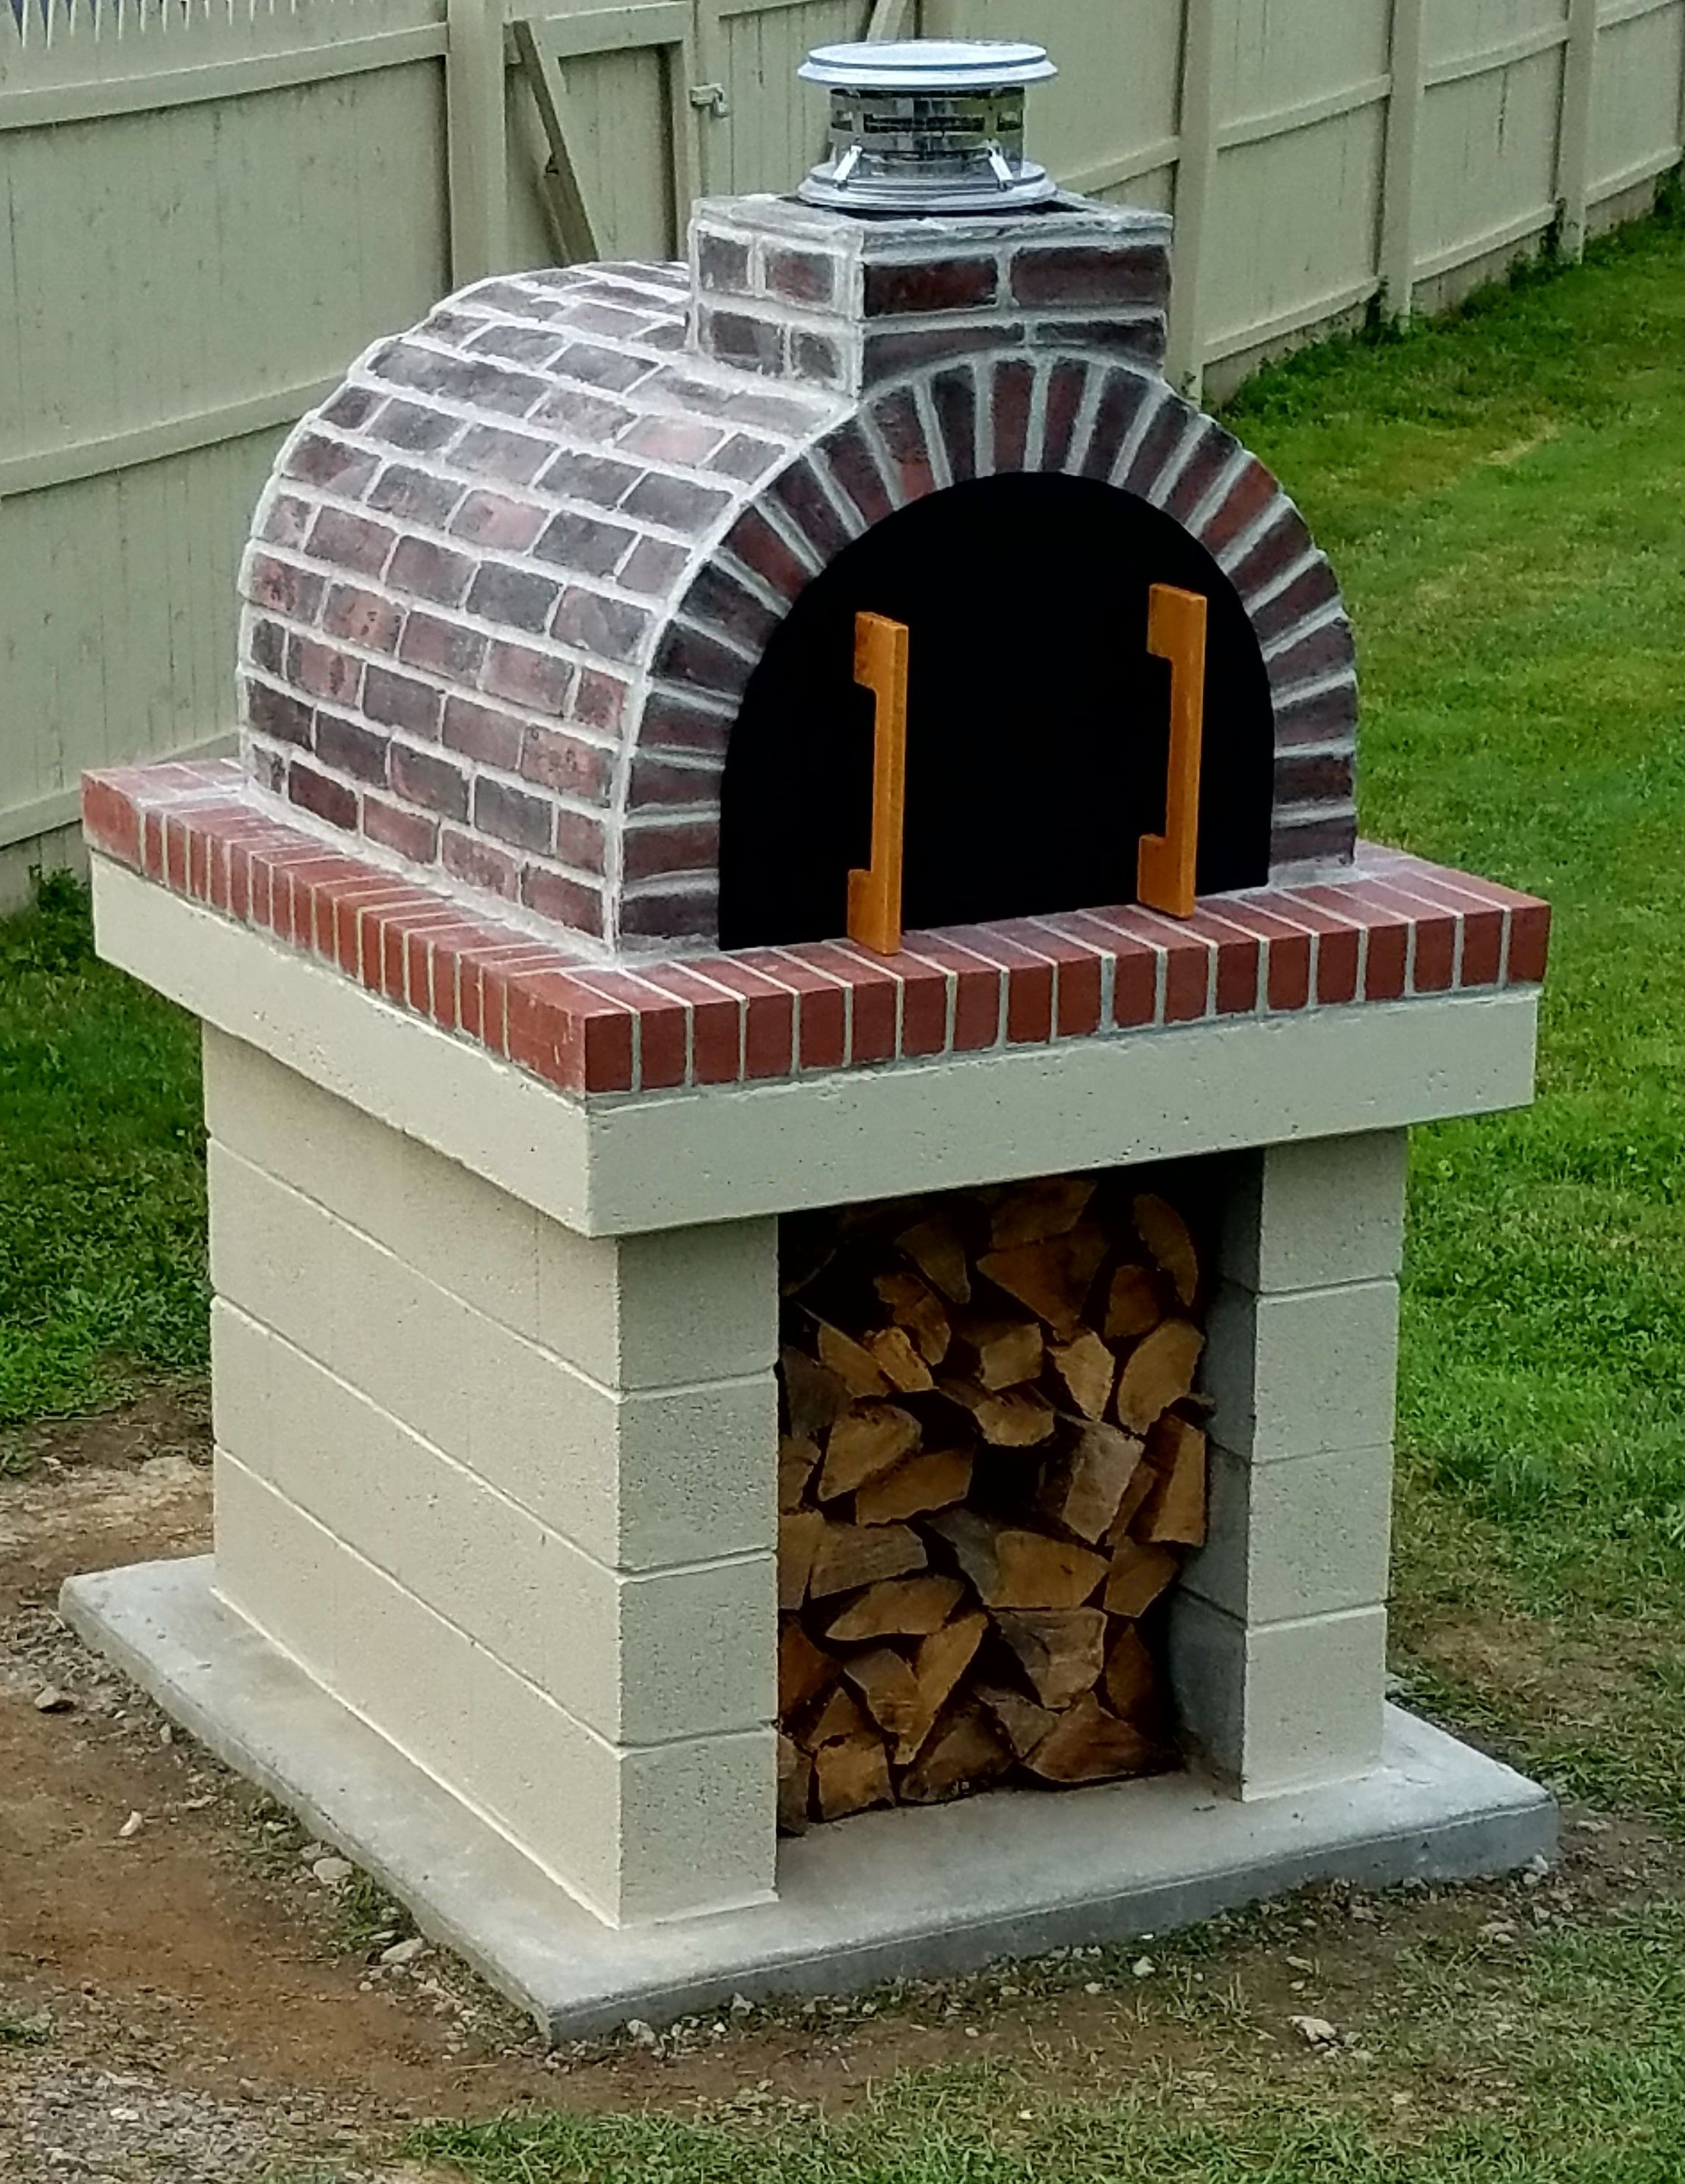 Outdoor Wood Fired Pizza Oven Pizza Oven Pizza Oven Outdoor Pizza Oven Outdoor Kitchen